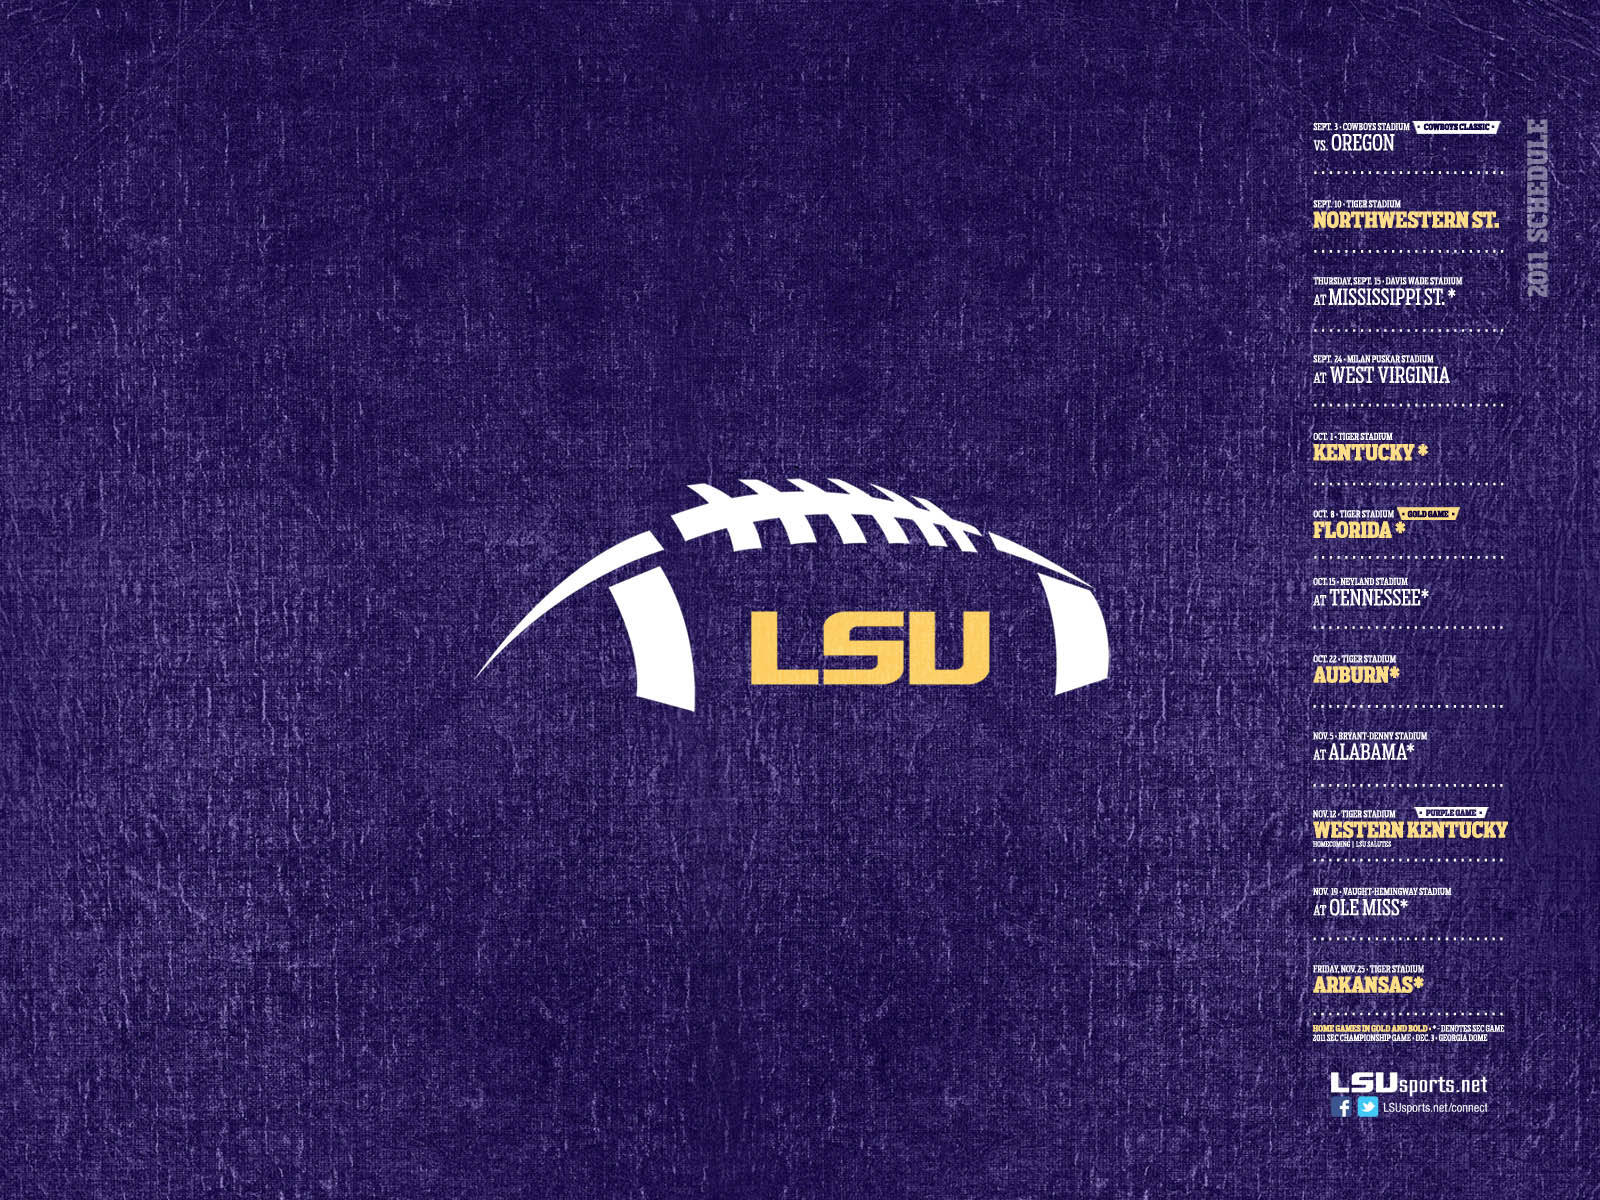 78+] Lsu Backgrounds on WallpaperSafari